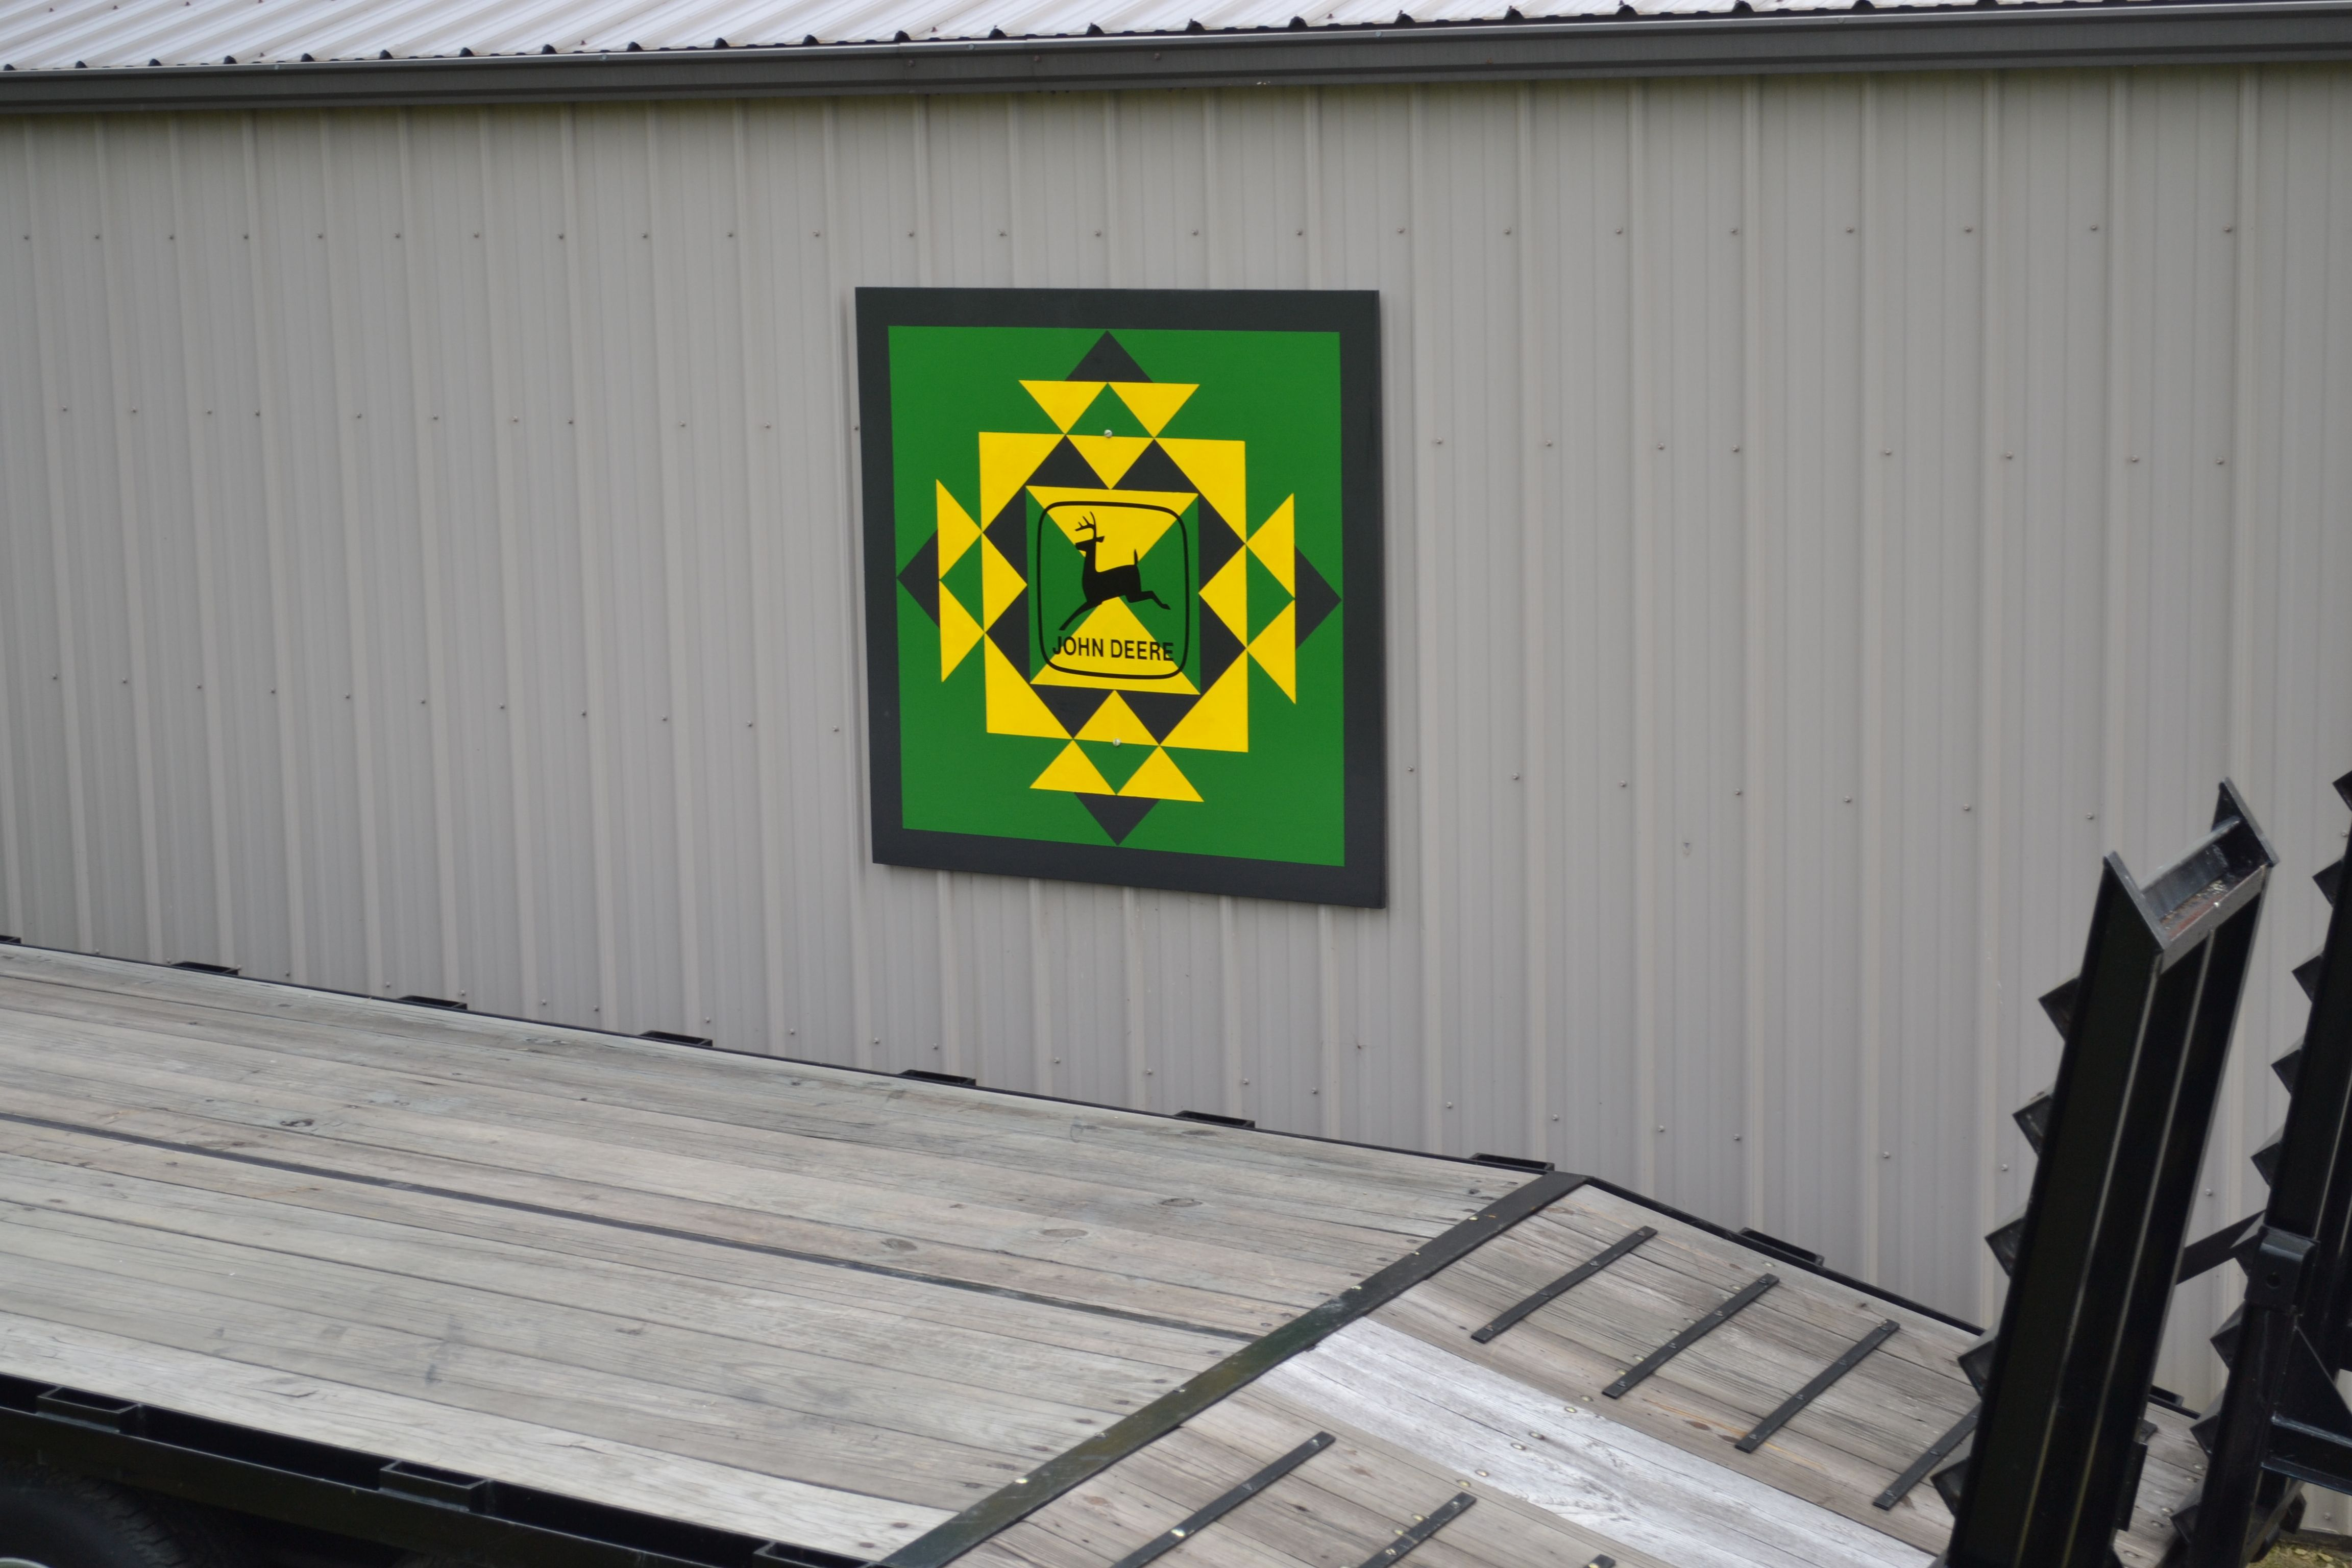 Outdoor 4x4 john deere quilt i painted for our barn crazy gal outdoor 4x4 john deere quilt i painted for our barn crazy gal barn quilts biocorpaavc Images